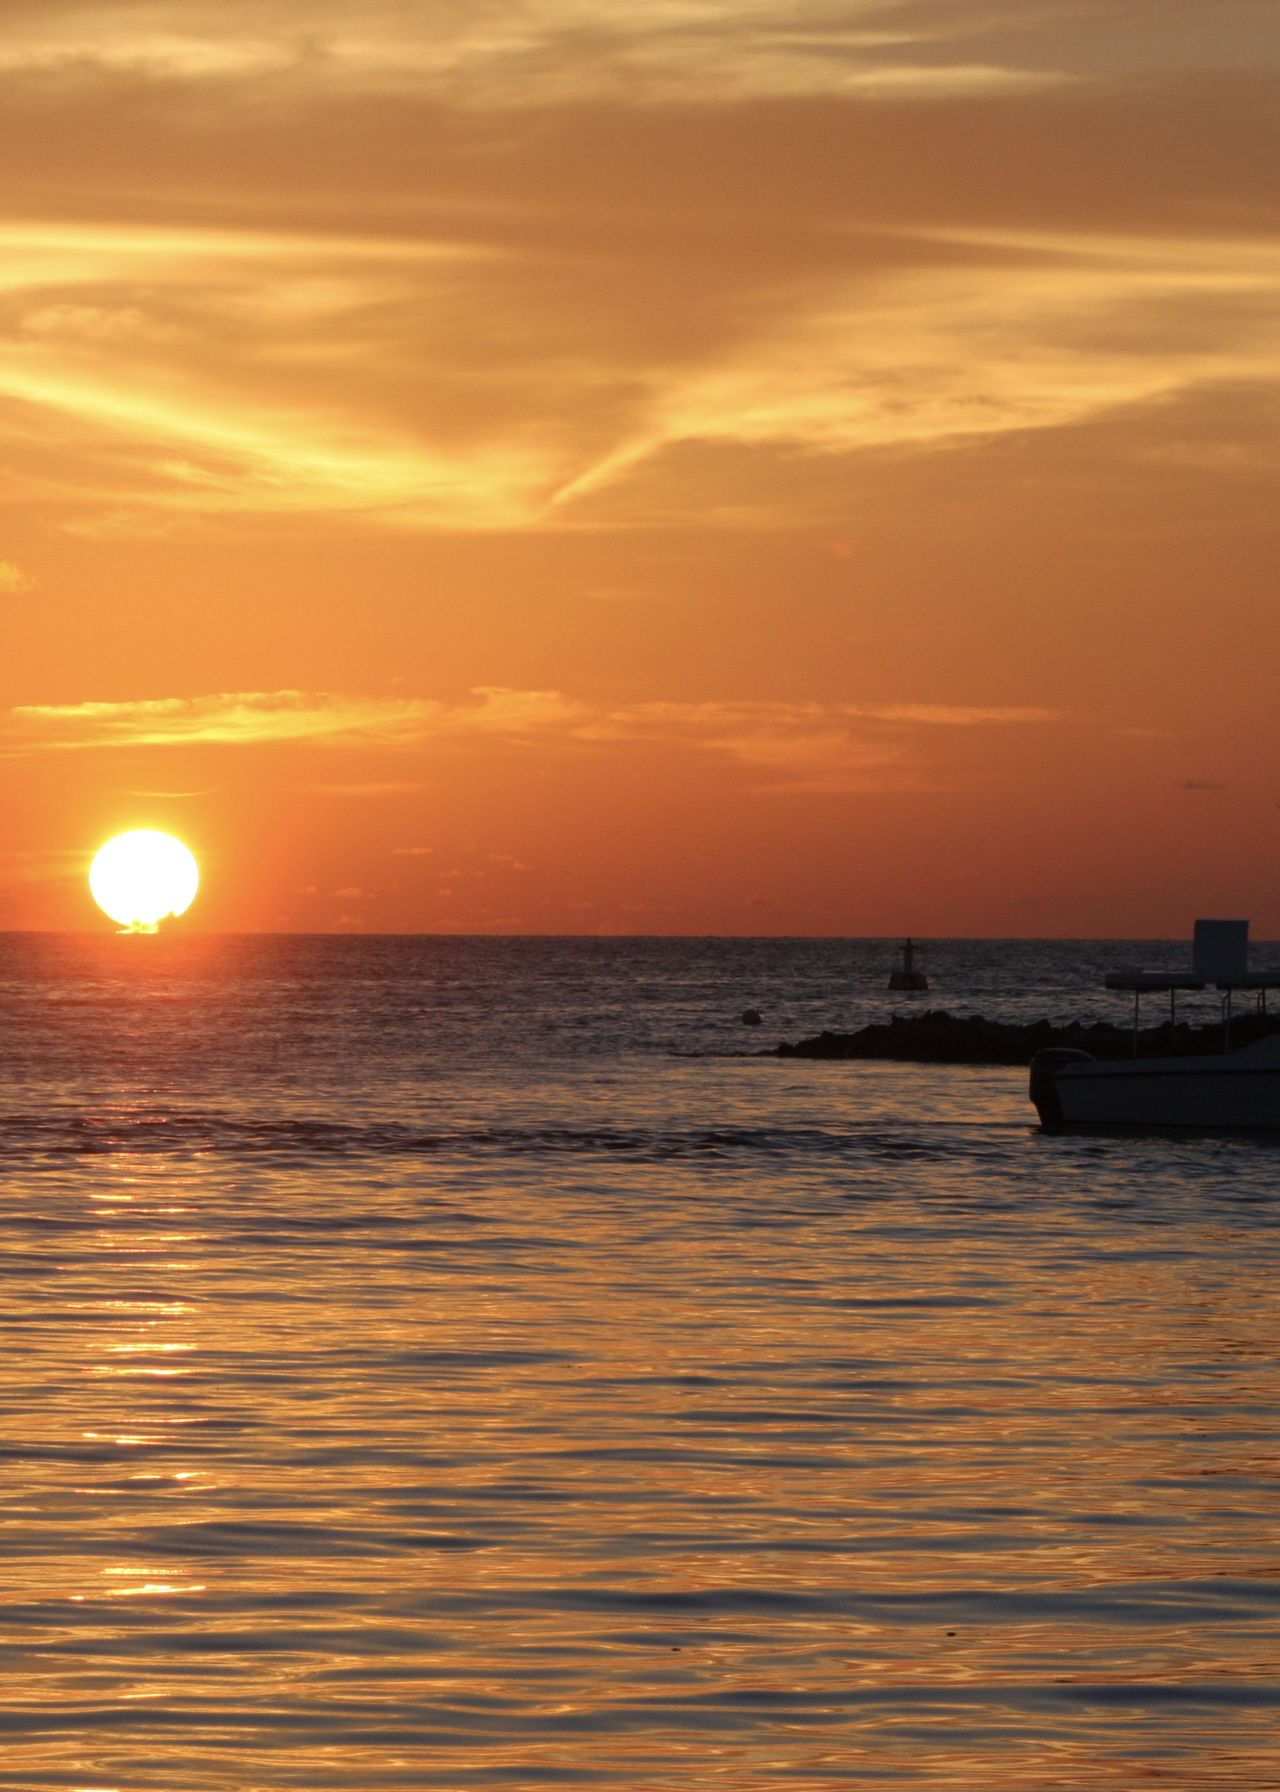 golden hour, sunset on the maldives Beauty In Nature Boat Colors Golden Hour Holiday Horizon Over Water Idyllic Life Light Maldives Nature Nautical Vessel Orange Color Outdoors Scenics Sea Silhouette Sky Sun Sunlight Sunset Tranquil Scene Tranquility Travel Water